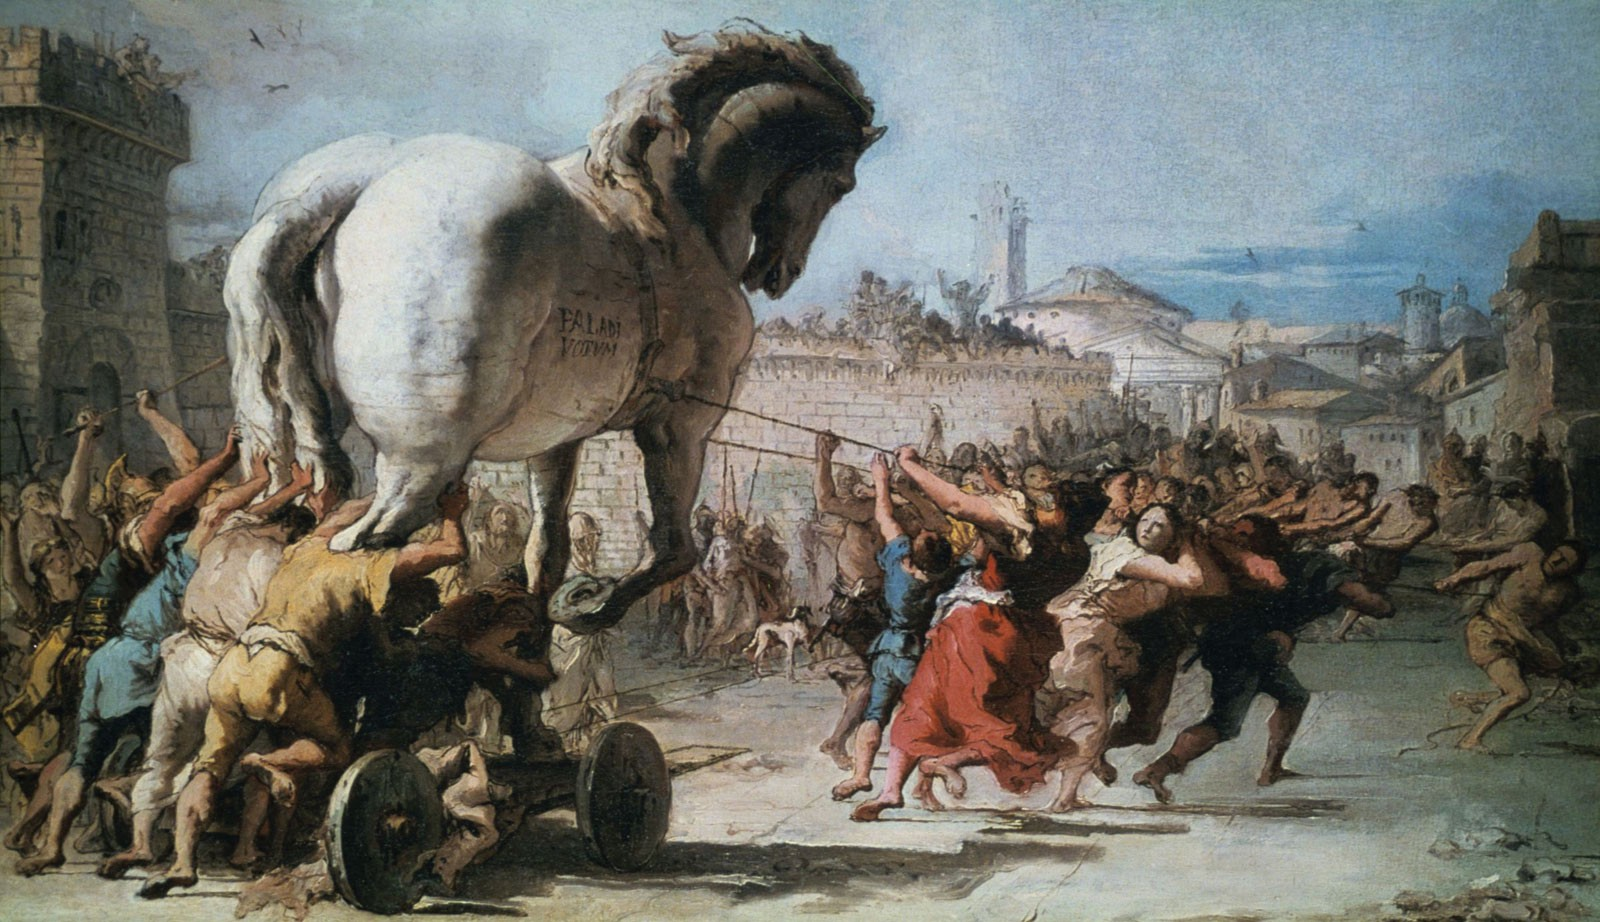 Painting of the Trojan horse